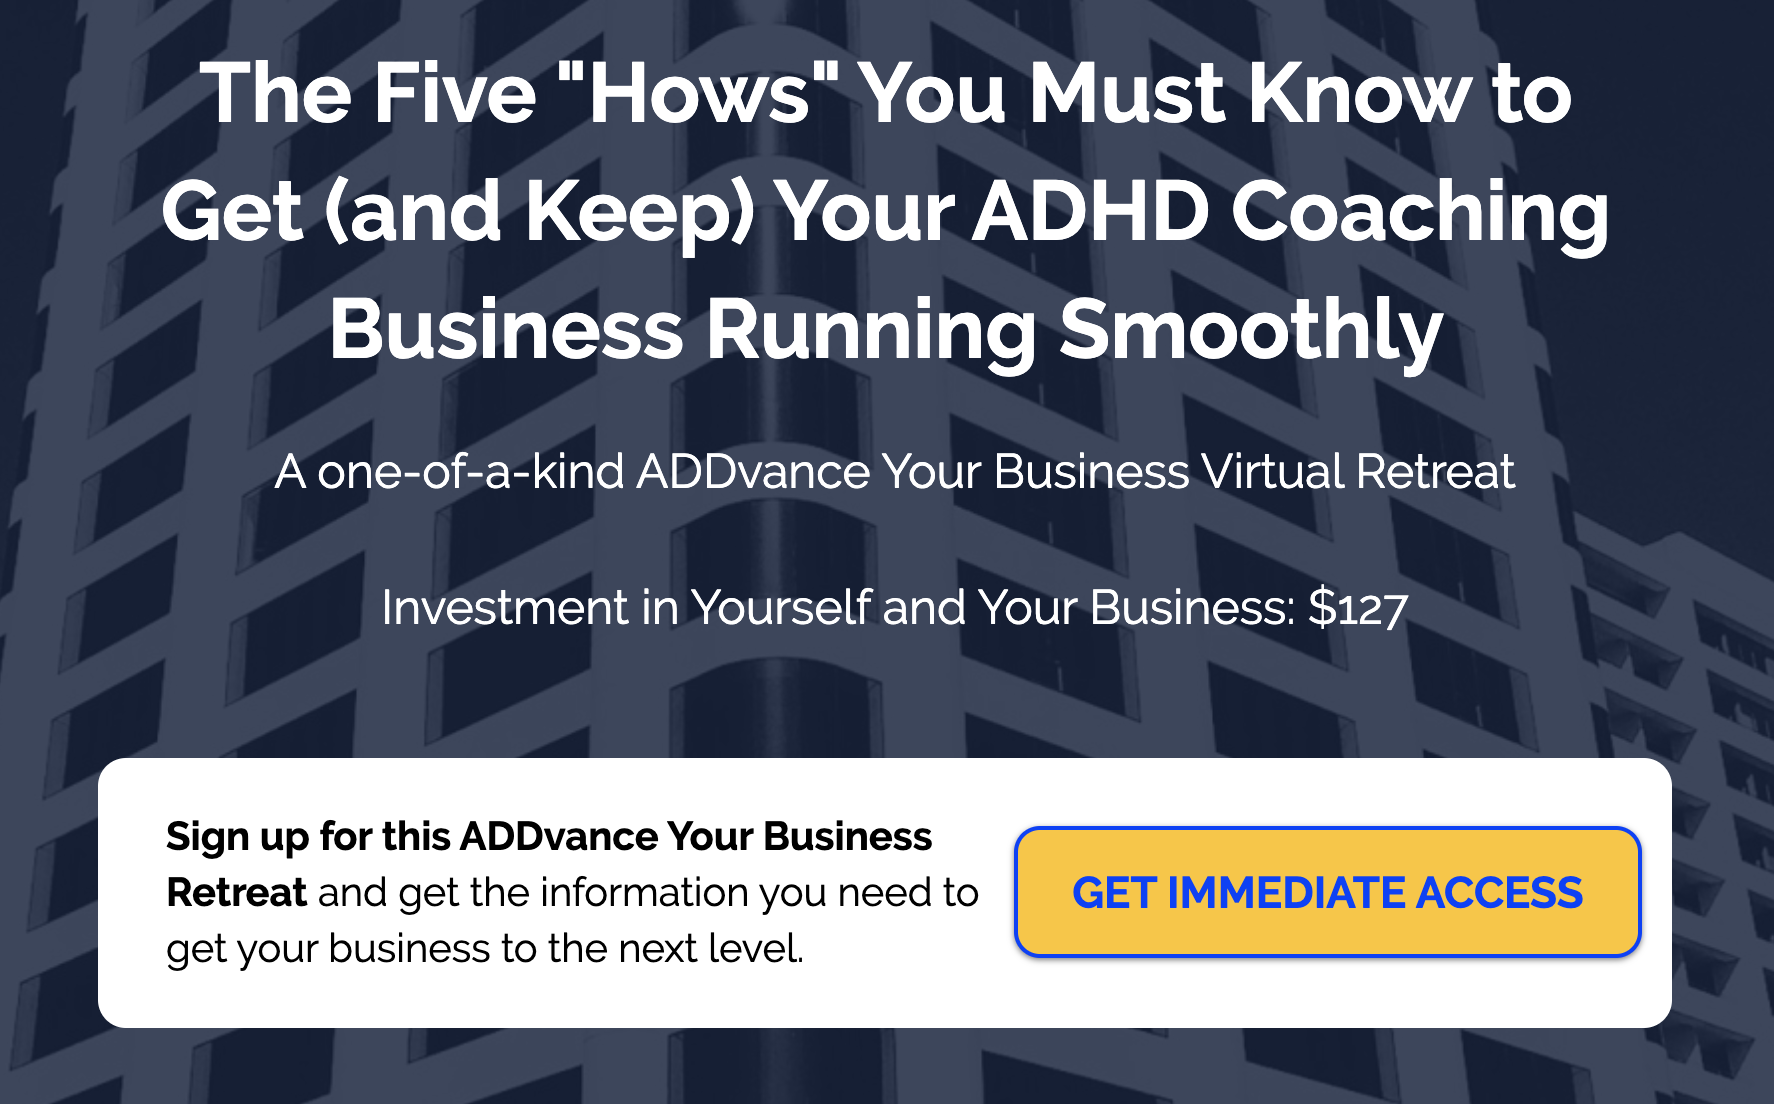 """The five """"How's"""" you must know to get (and keep) your ADHD coaching business running smoothly."""